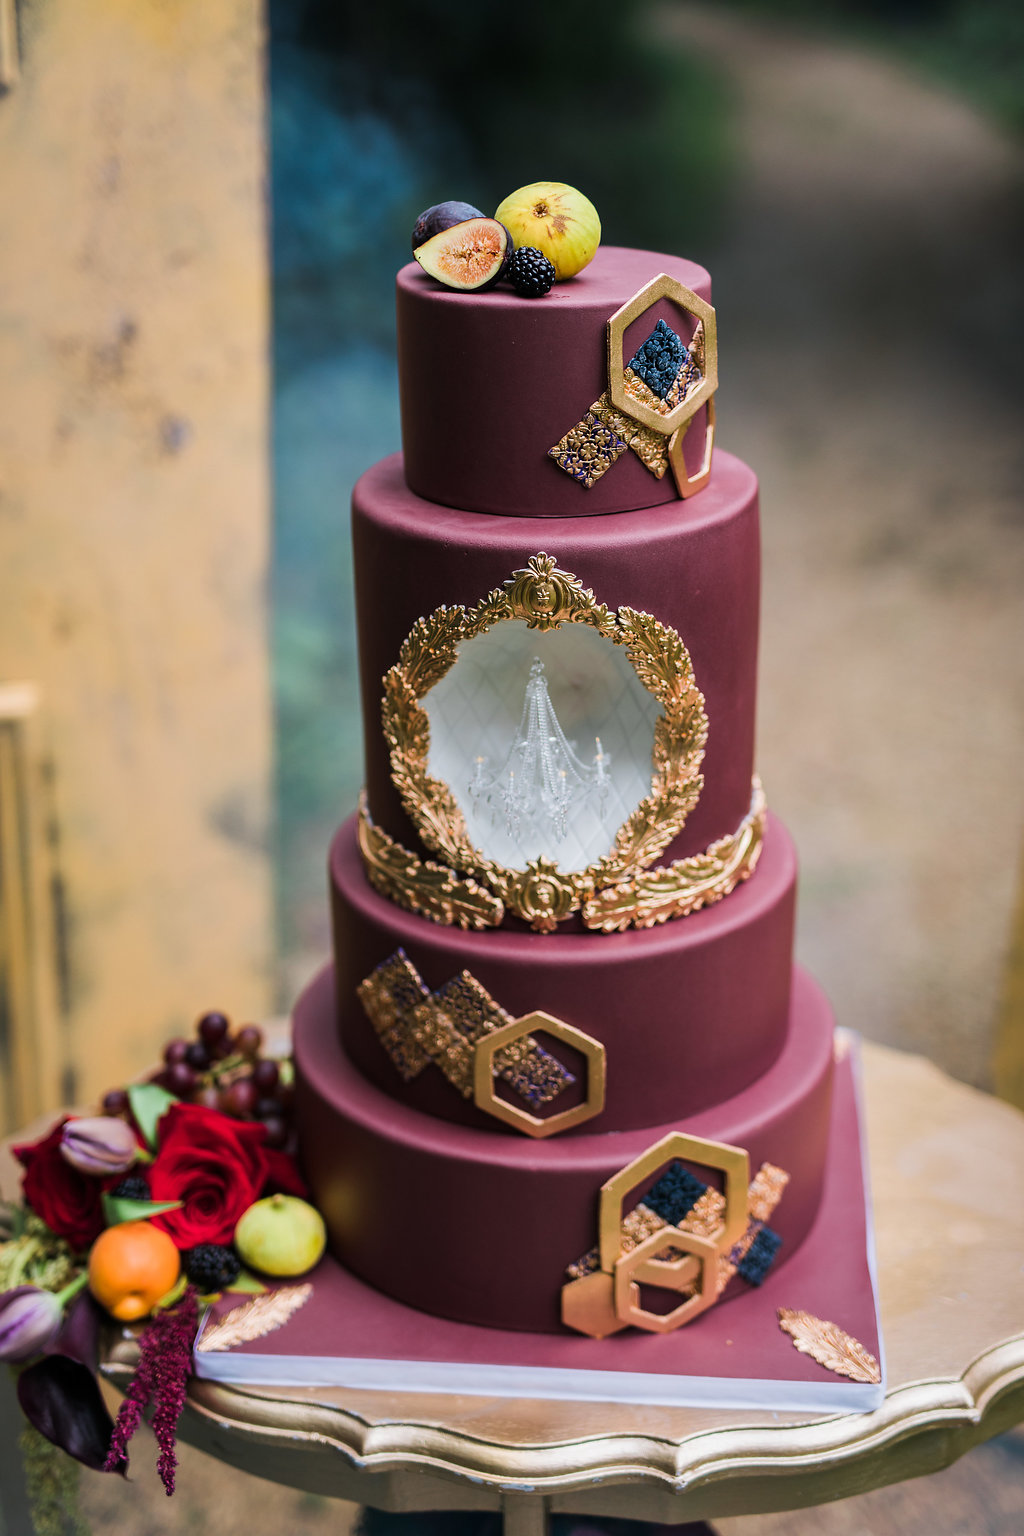 burgundy wedding cakes with chandeliers - photo by Katie Ricard Photography http://ruffledblog.com/dramatic-woodland-wedding-inspiration-with-burgundy-accents